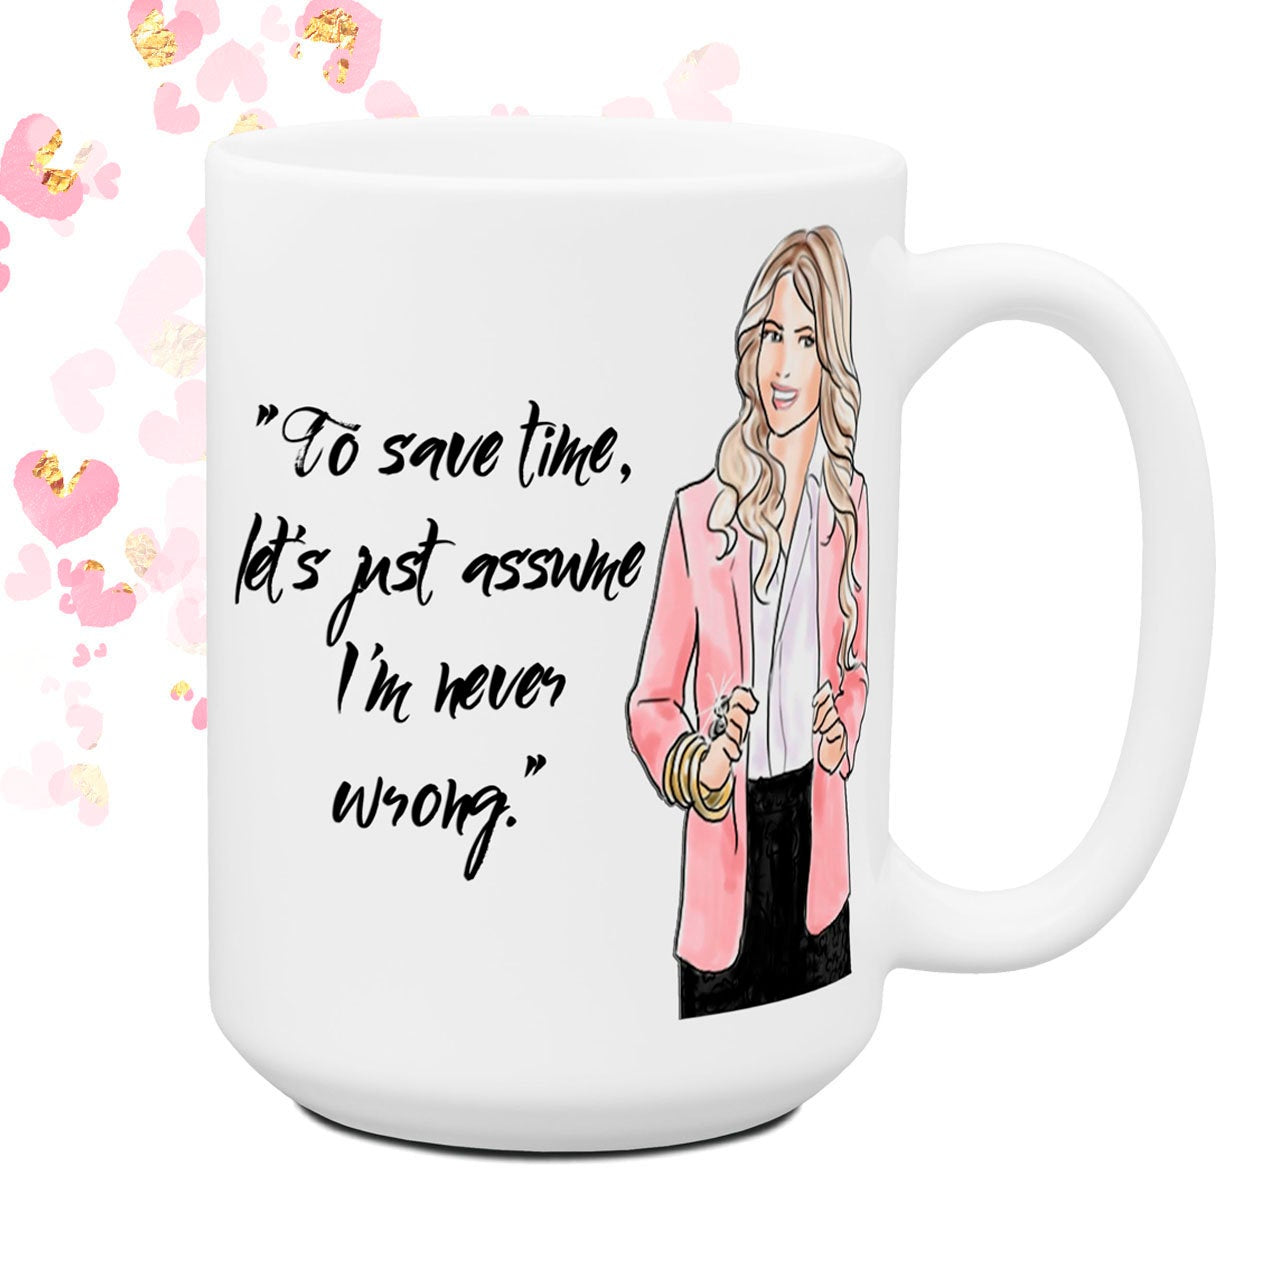 Let's Just Assume I am Right | Funny Mugs for Women | Sassy Humor Mug | Large Coffee Cups Mugs | Co-worker Gift | Work Friend | Office Mug